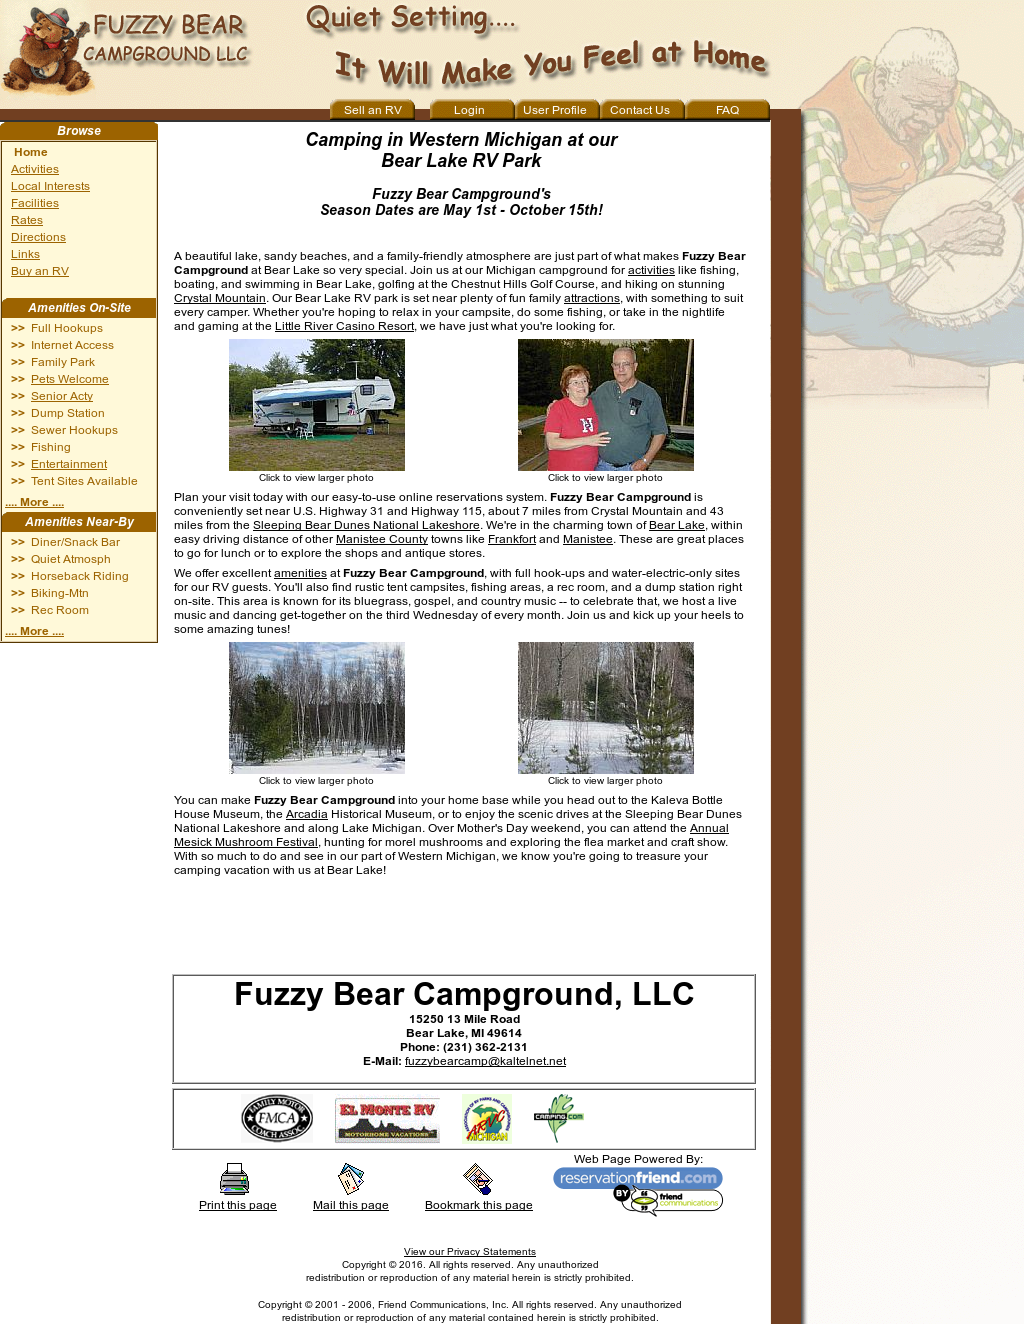 Fuzzy Bear Campground Competitors, Revenue and Employees